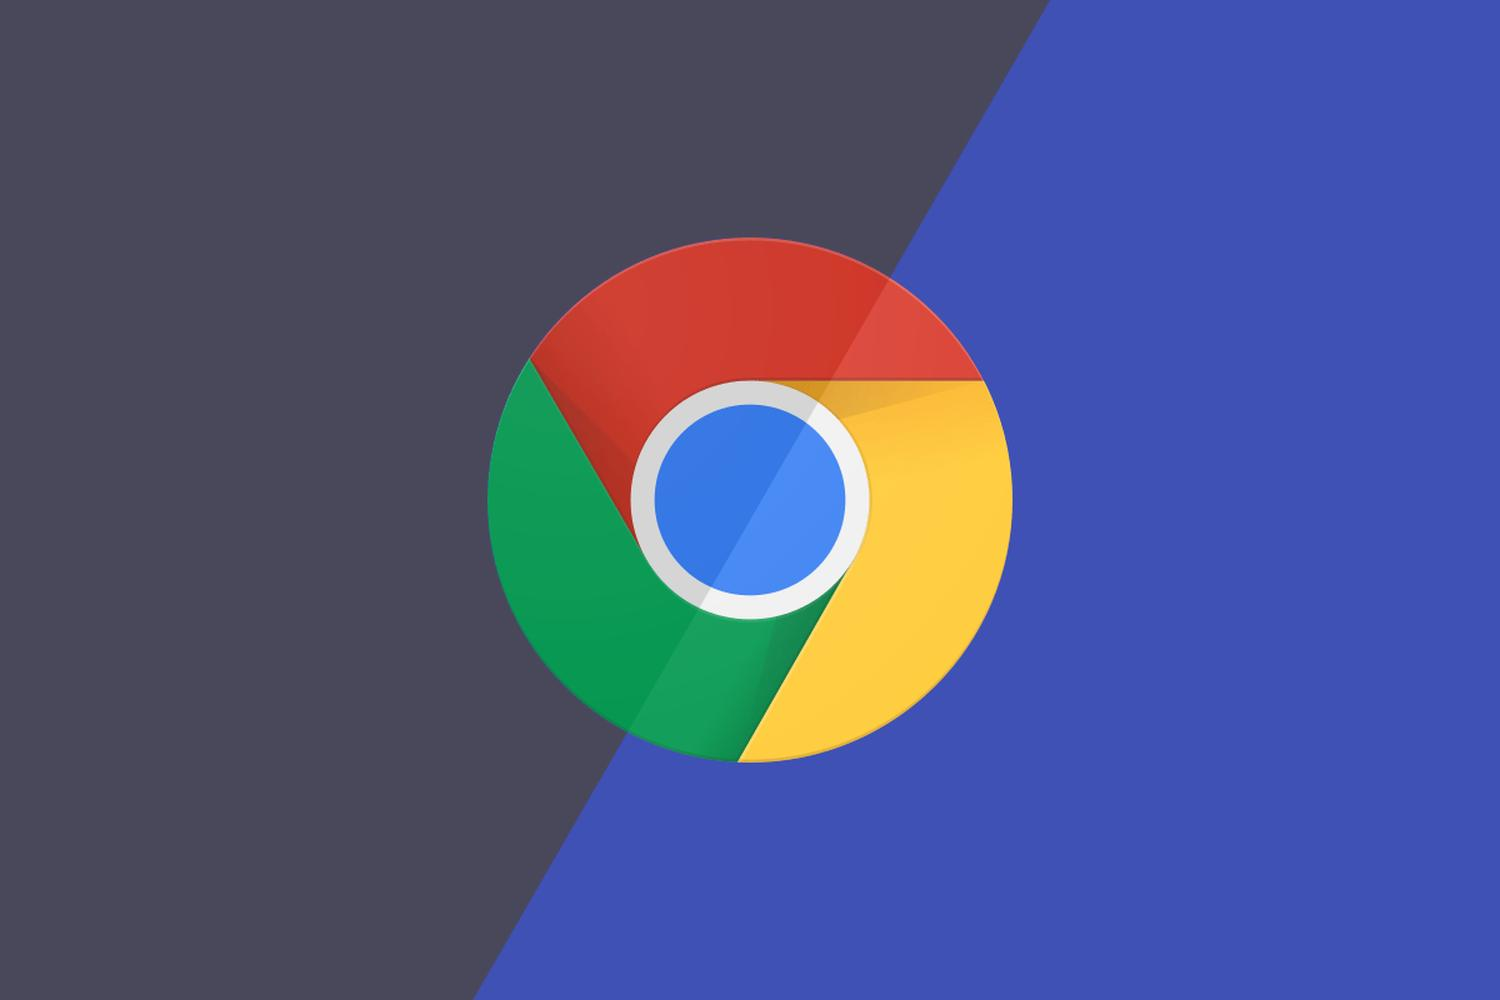 google chrome dark mode logo